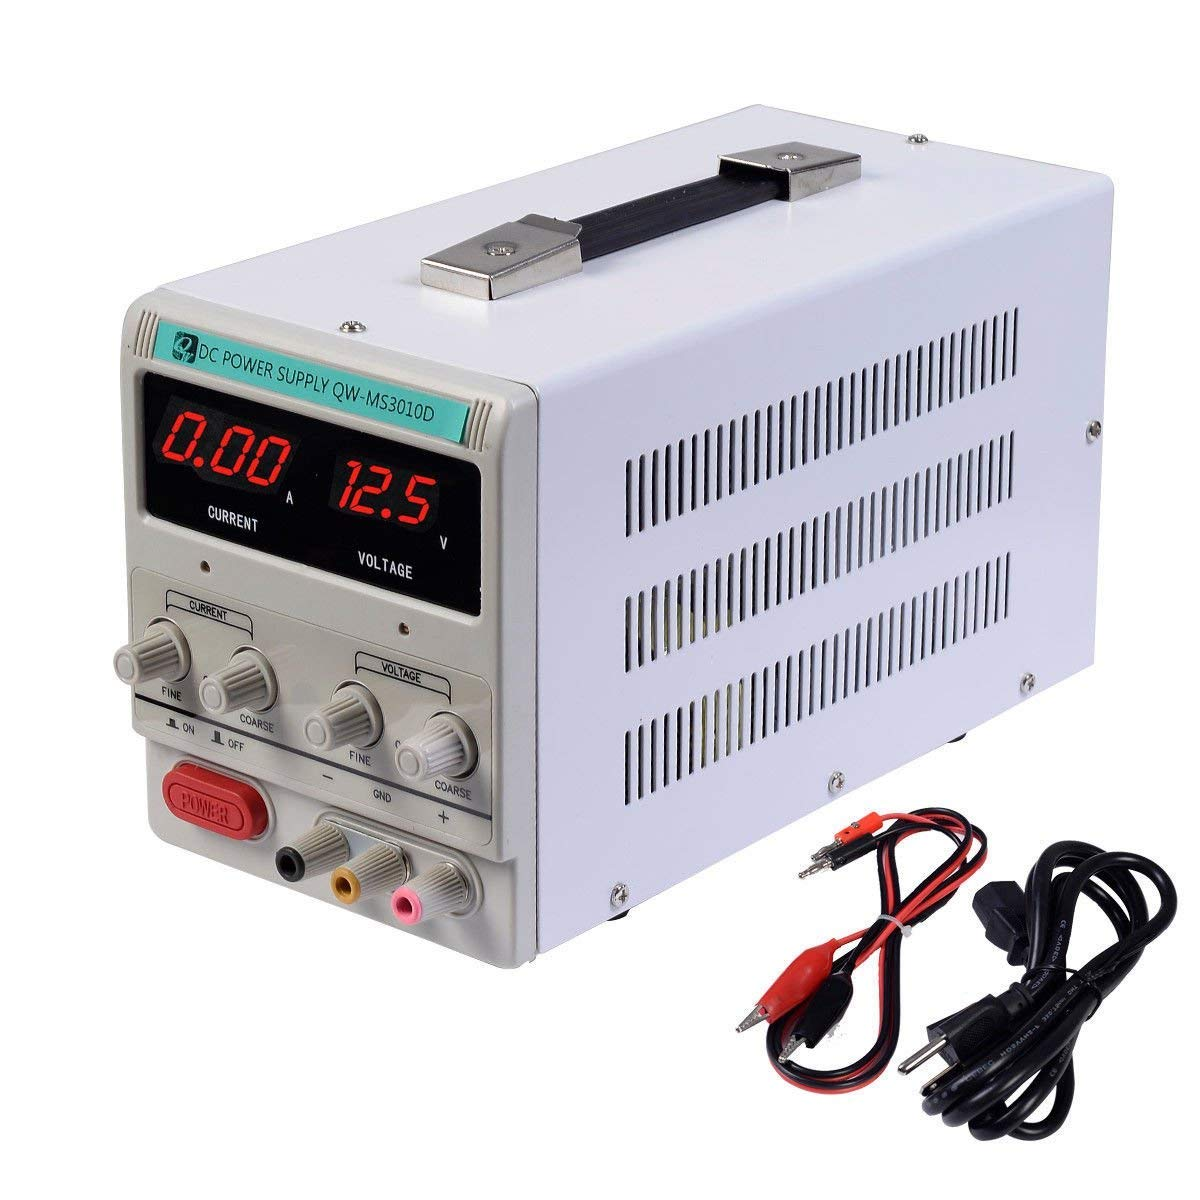 Variable Adjustable Lab DC Bench Power Supply 0-30V 0-10A -US Power Cord by CZJUN